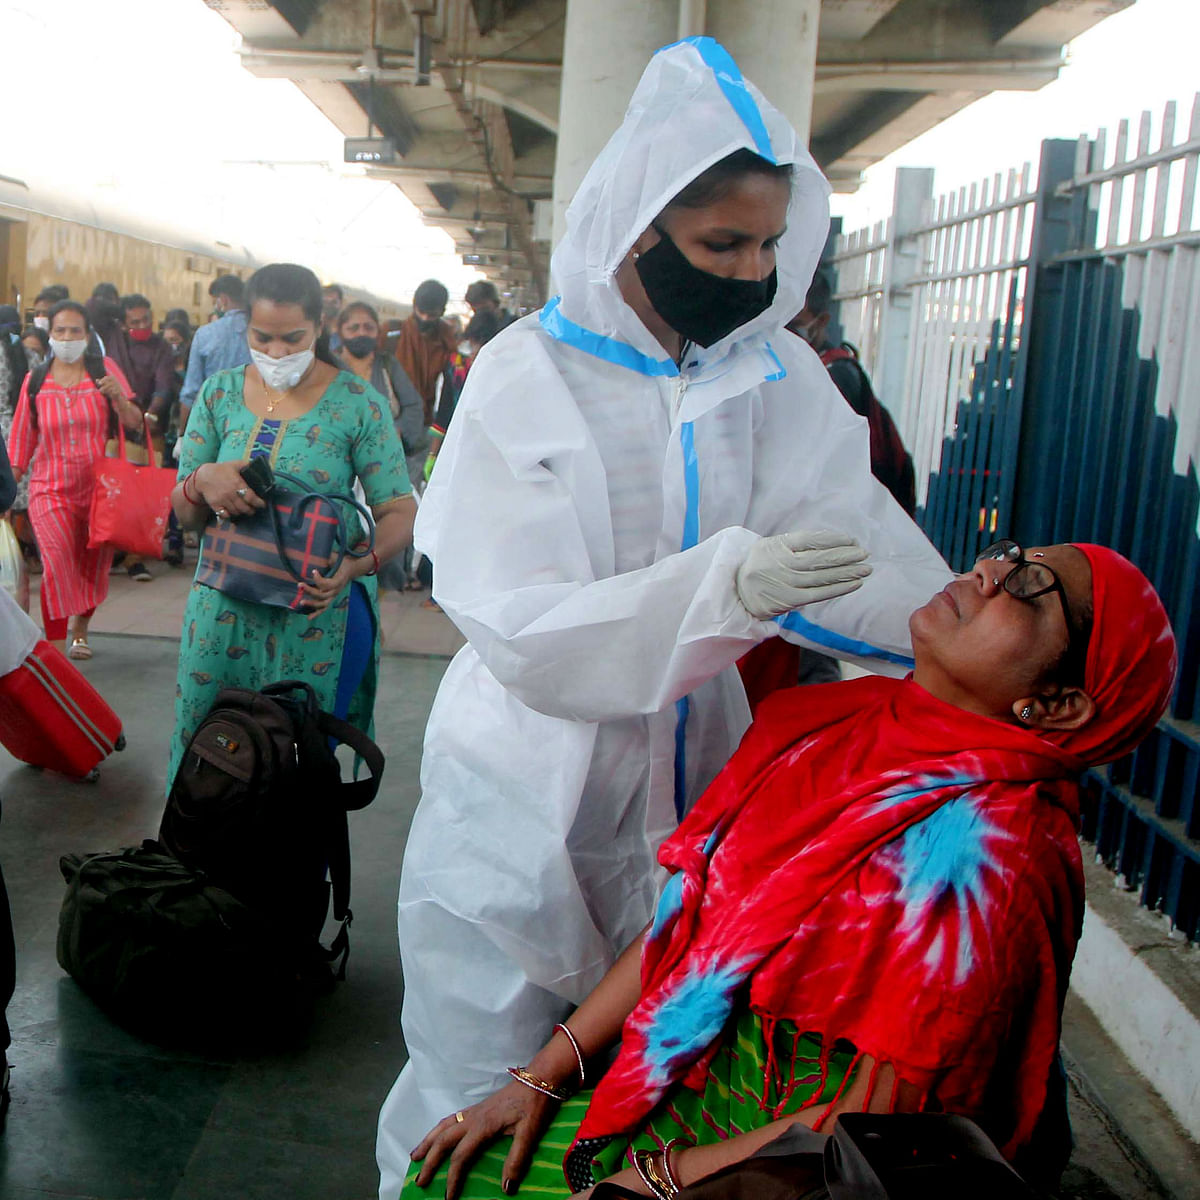 COVID-19 latest updates: India reports 17,407 new cases, 89 deaths in last 24 hours